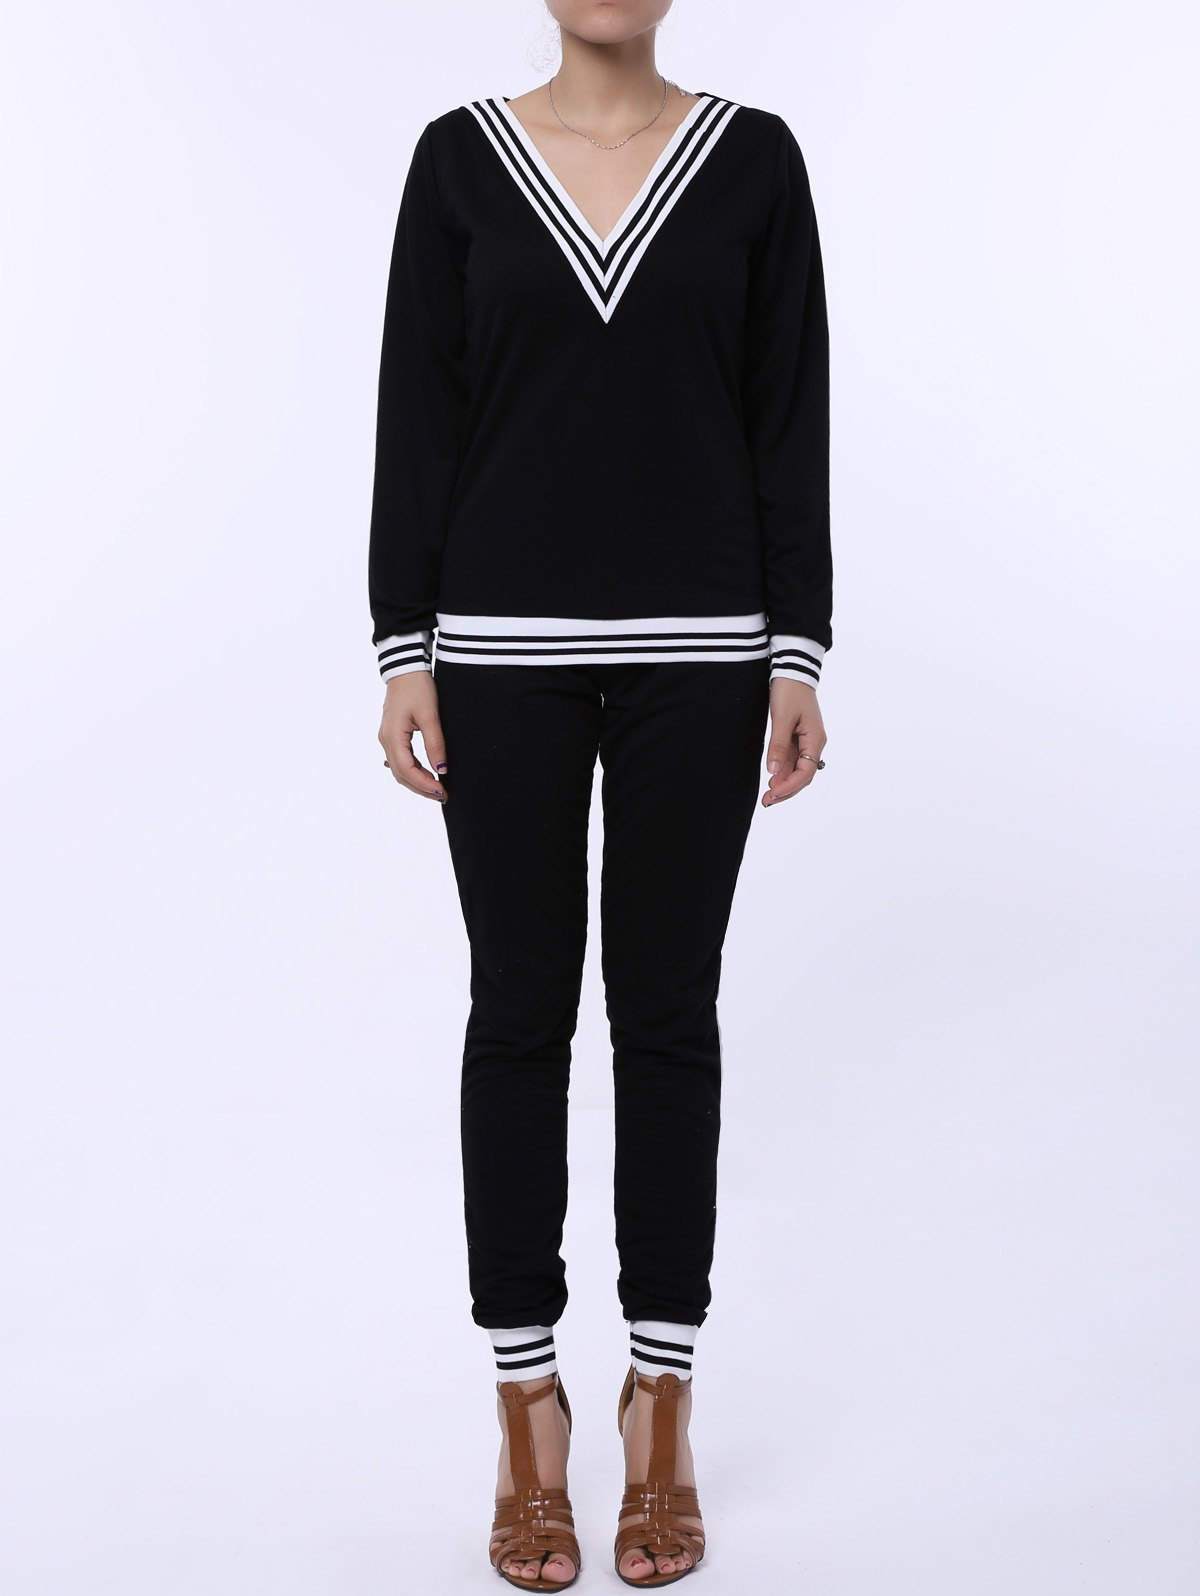 Shops Fashionable V-Neck Long Sleeve Striped Sweatshirt + Fitted Pants Twinset For Women